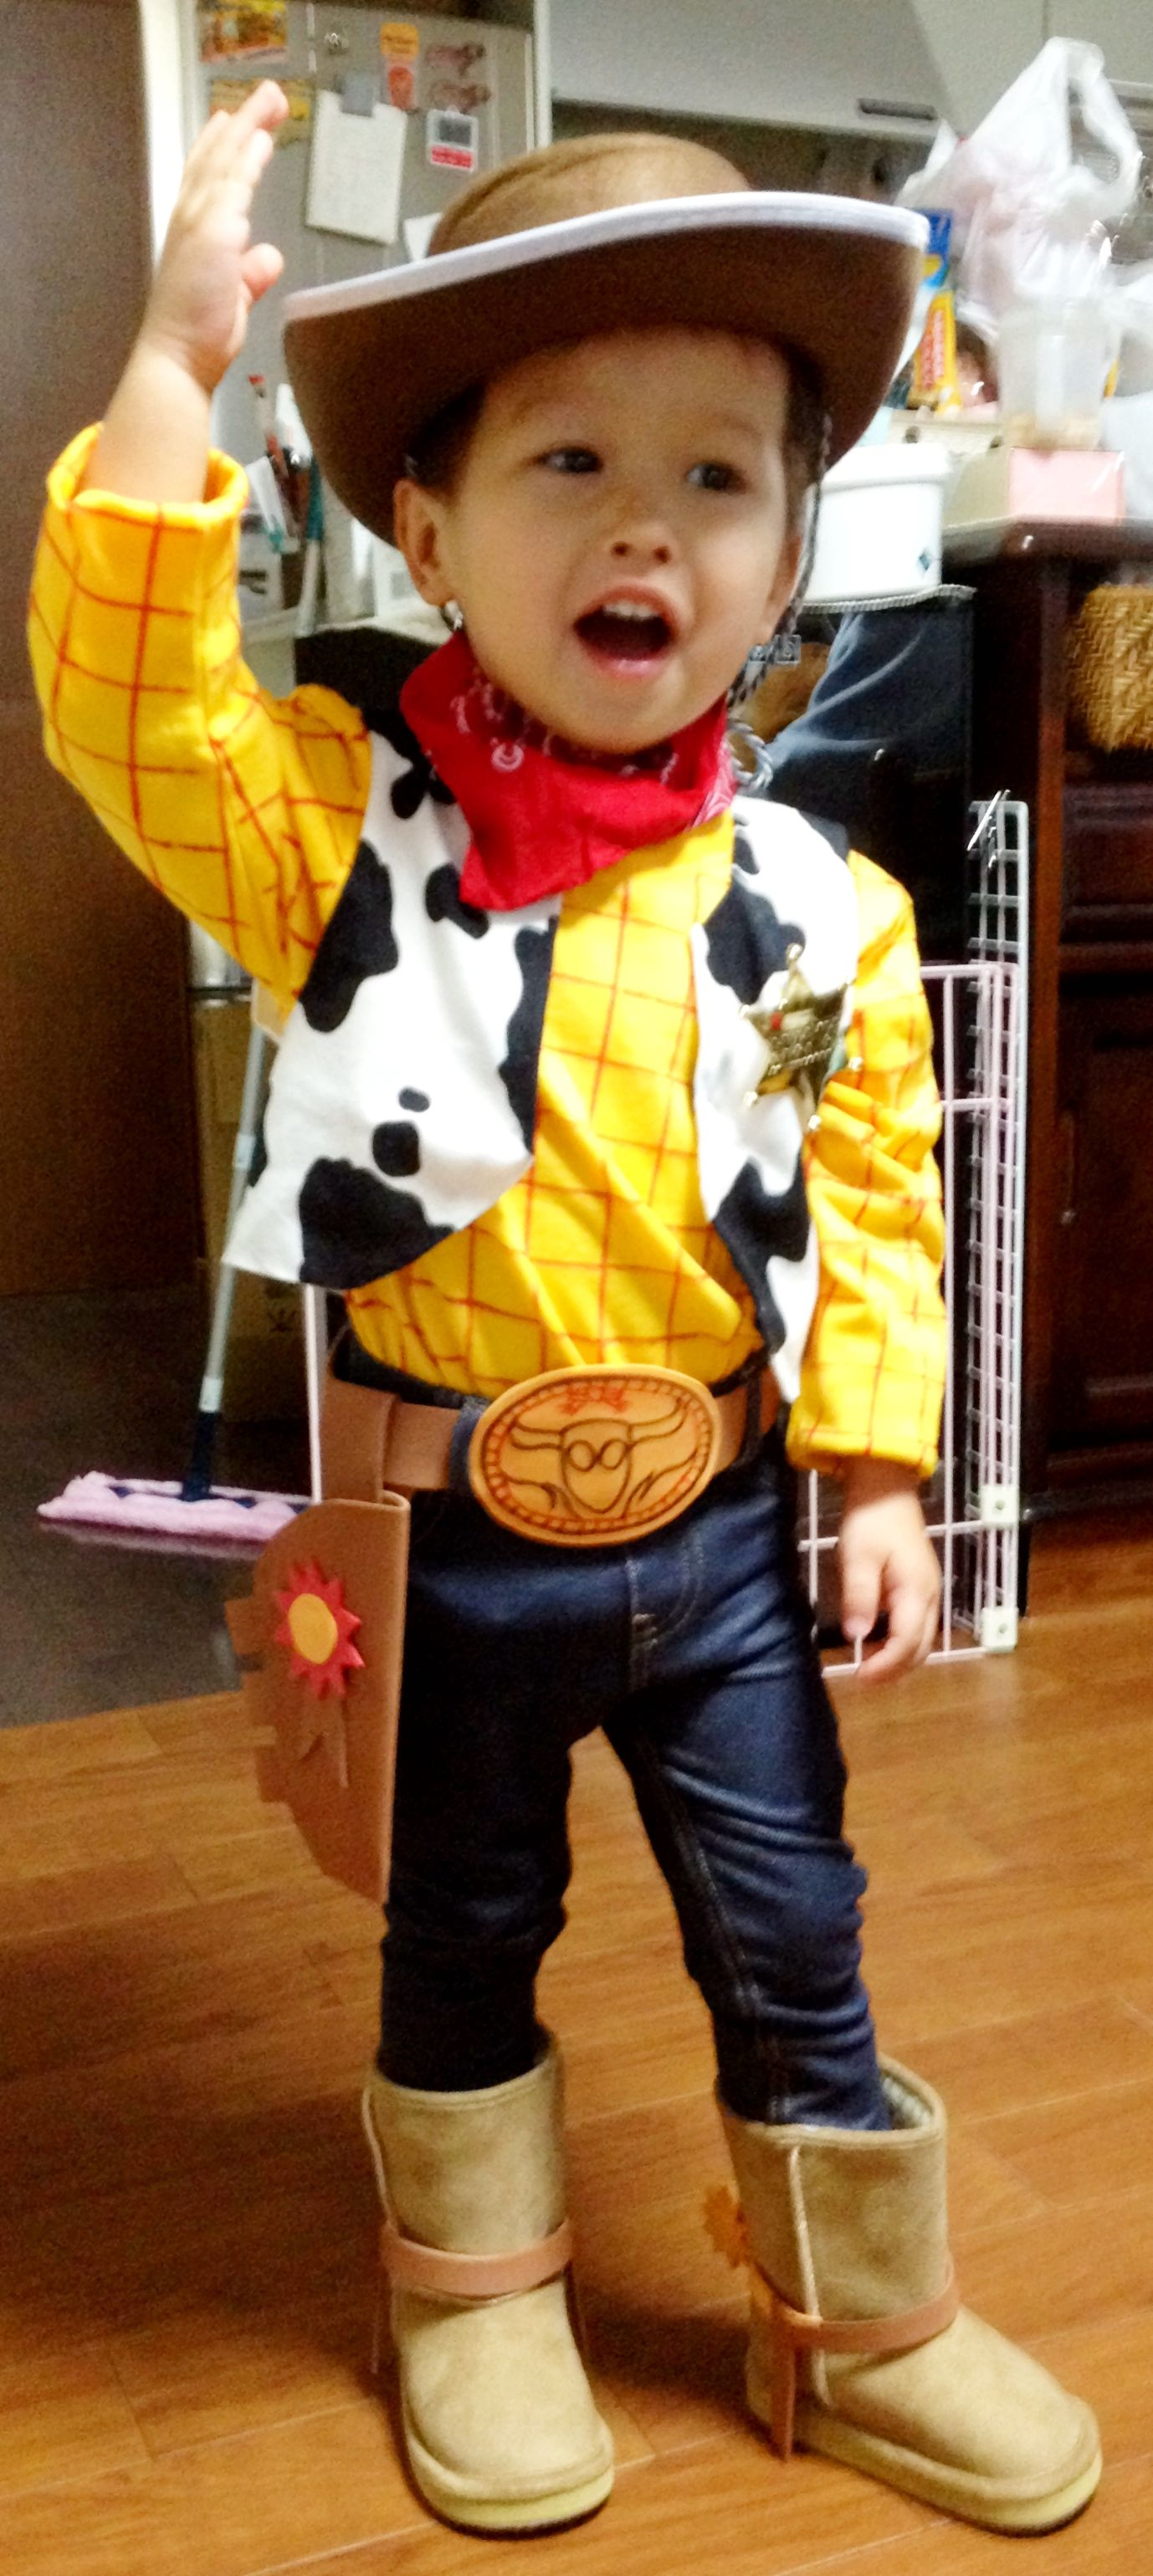 Toys For Halloween : Toy story woody costume holiday pinterest